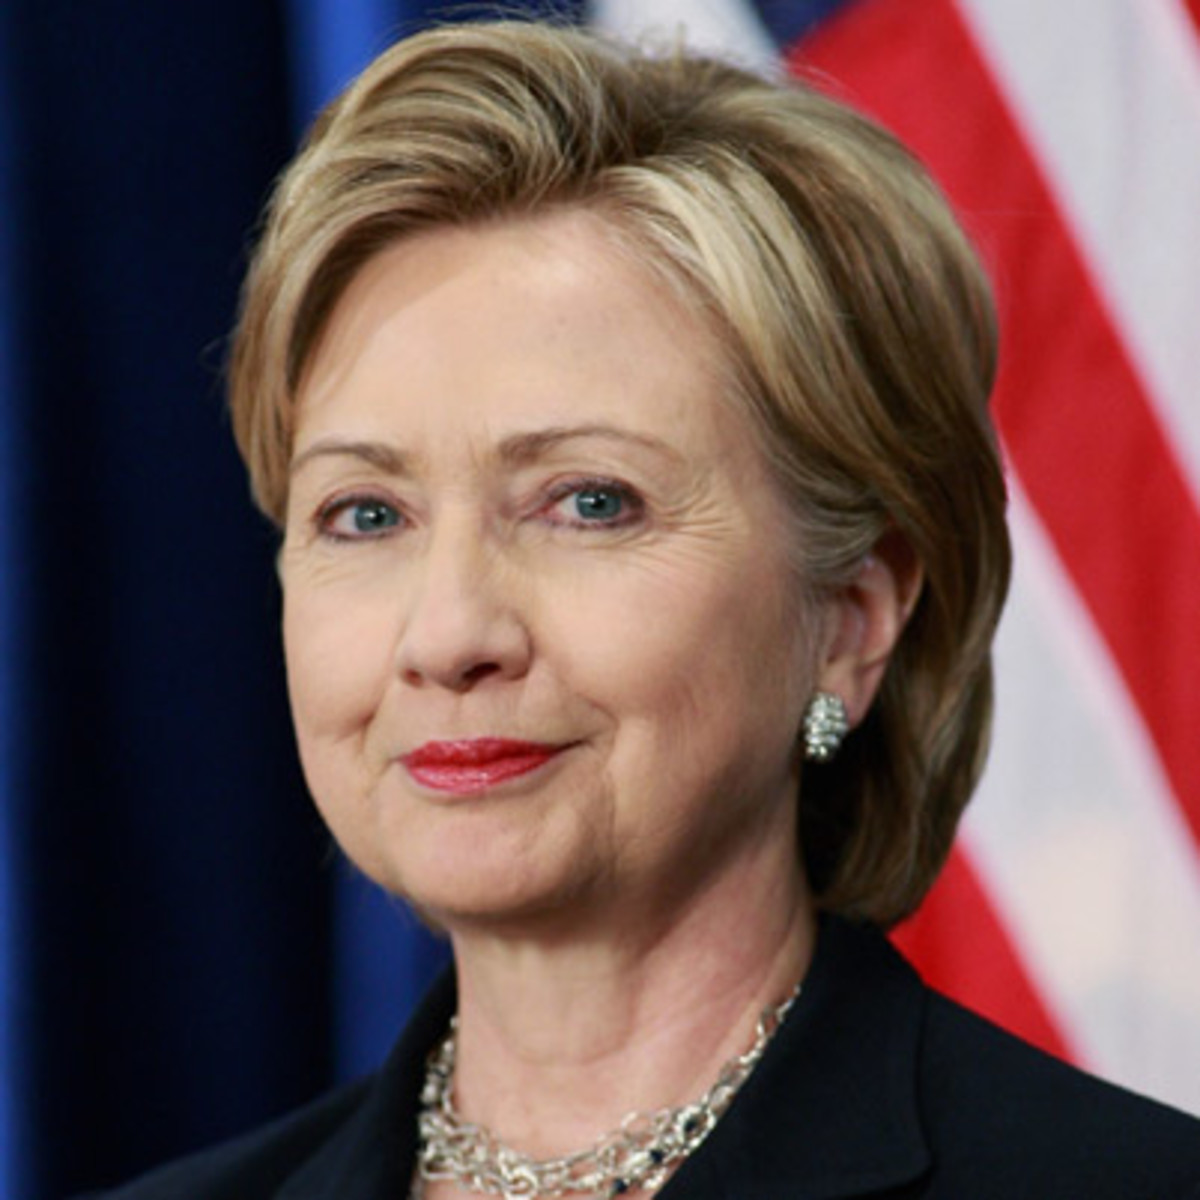 Hillary Clinton photo via Getty Images